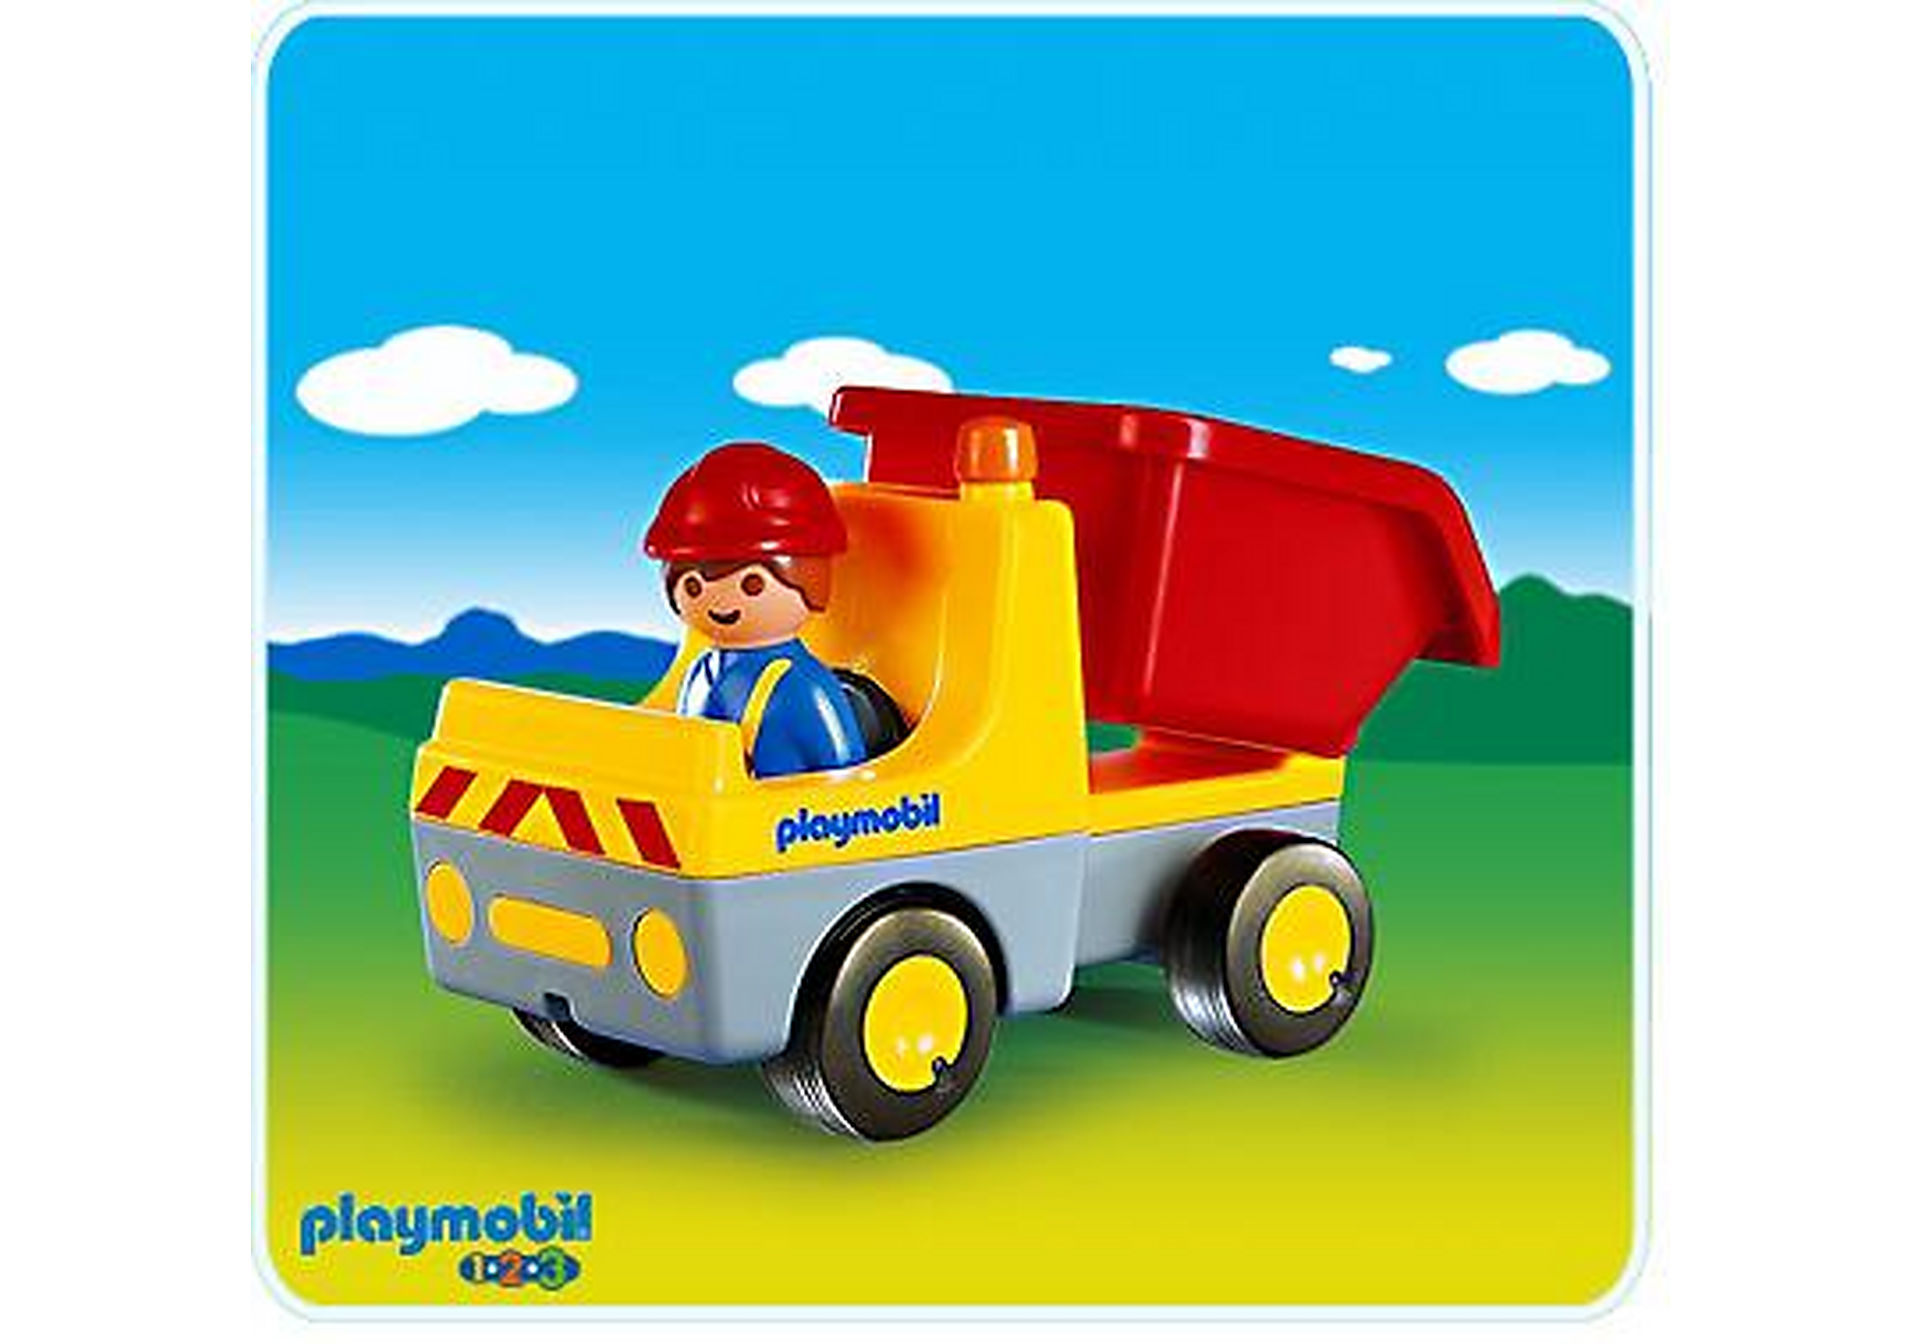 http://media.playmobil.com/i/playmobil/6732-A_product_detail/Conducteur /camion benne basculante 1.2.3